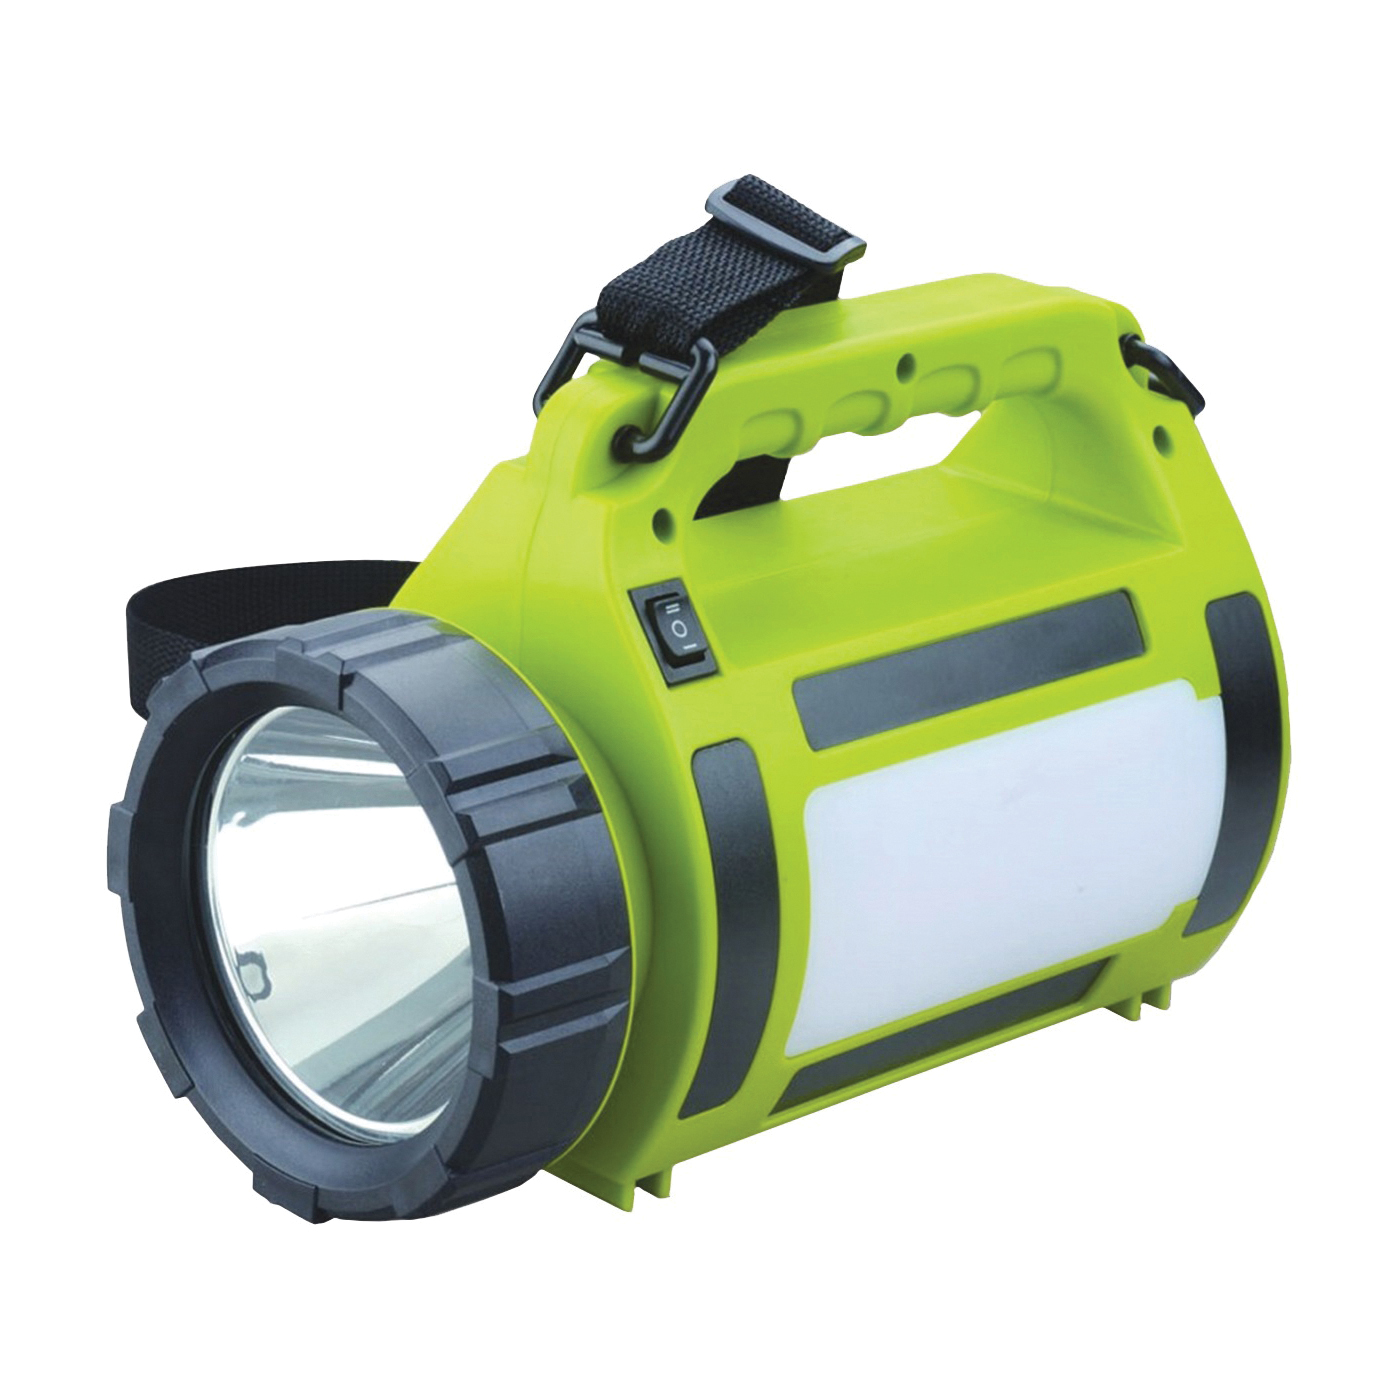 Picture of Dorcy 41-1081 Rechargeable USB Lantern, Lithium-Ion Battery, LED Lamp, 700 Lumens Lumens, Green